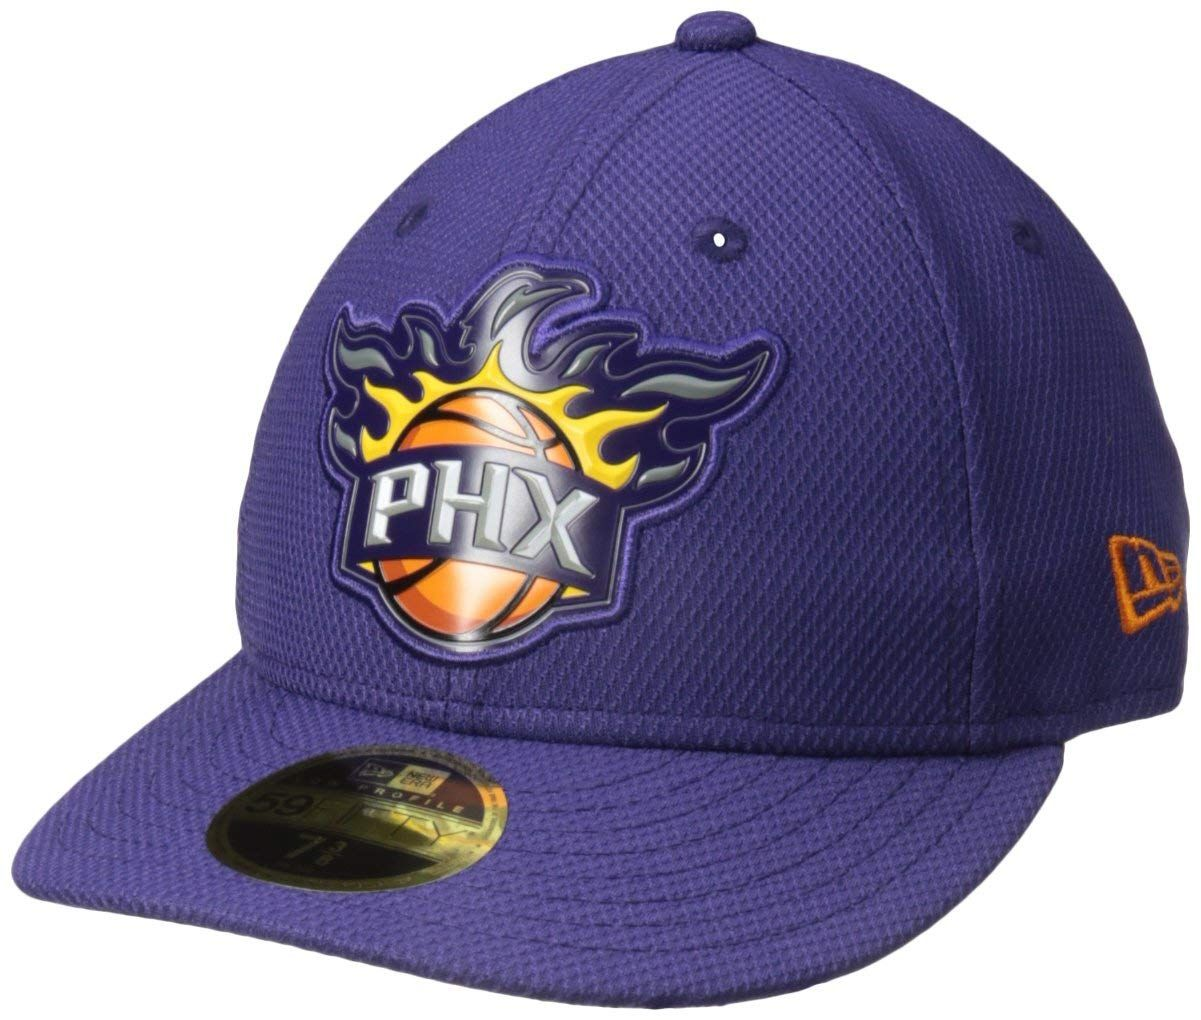 NBA Phoenix Suns Adult Bevel Team Low Profile 59FIFTY Fitted Cap ... 29ad27e50d74